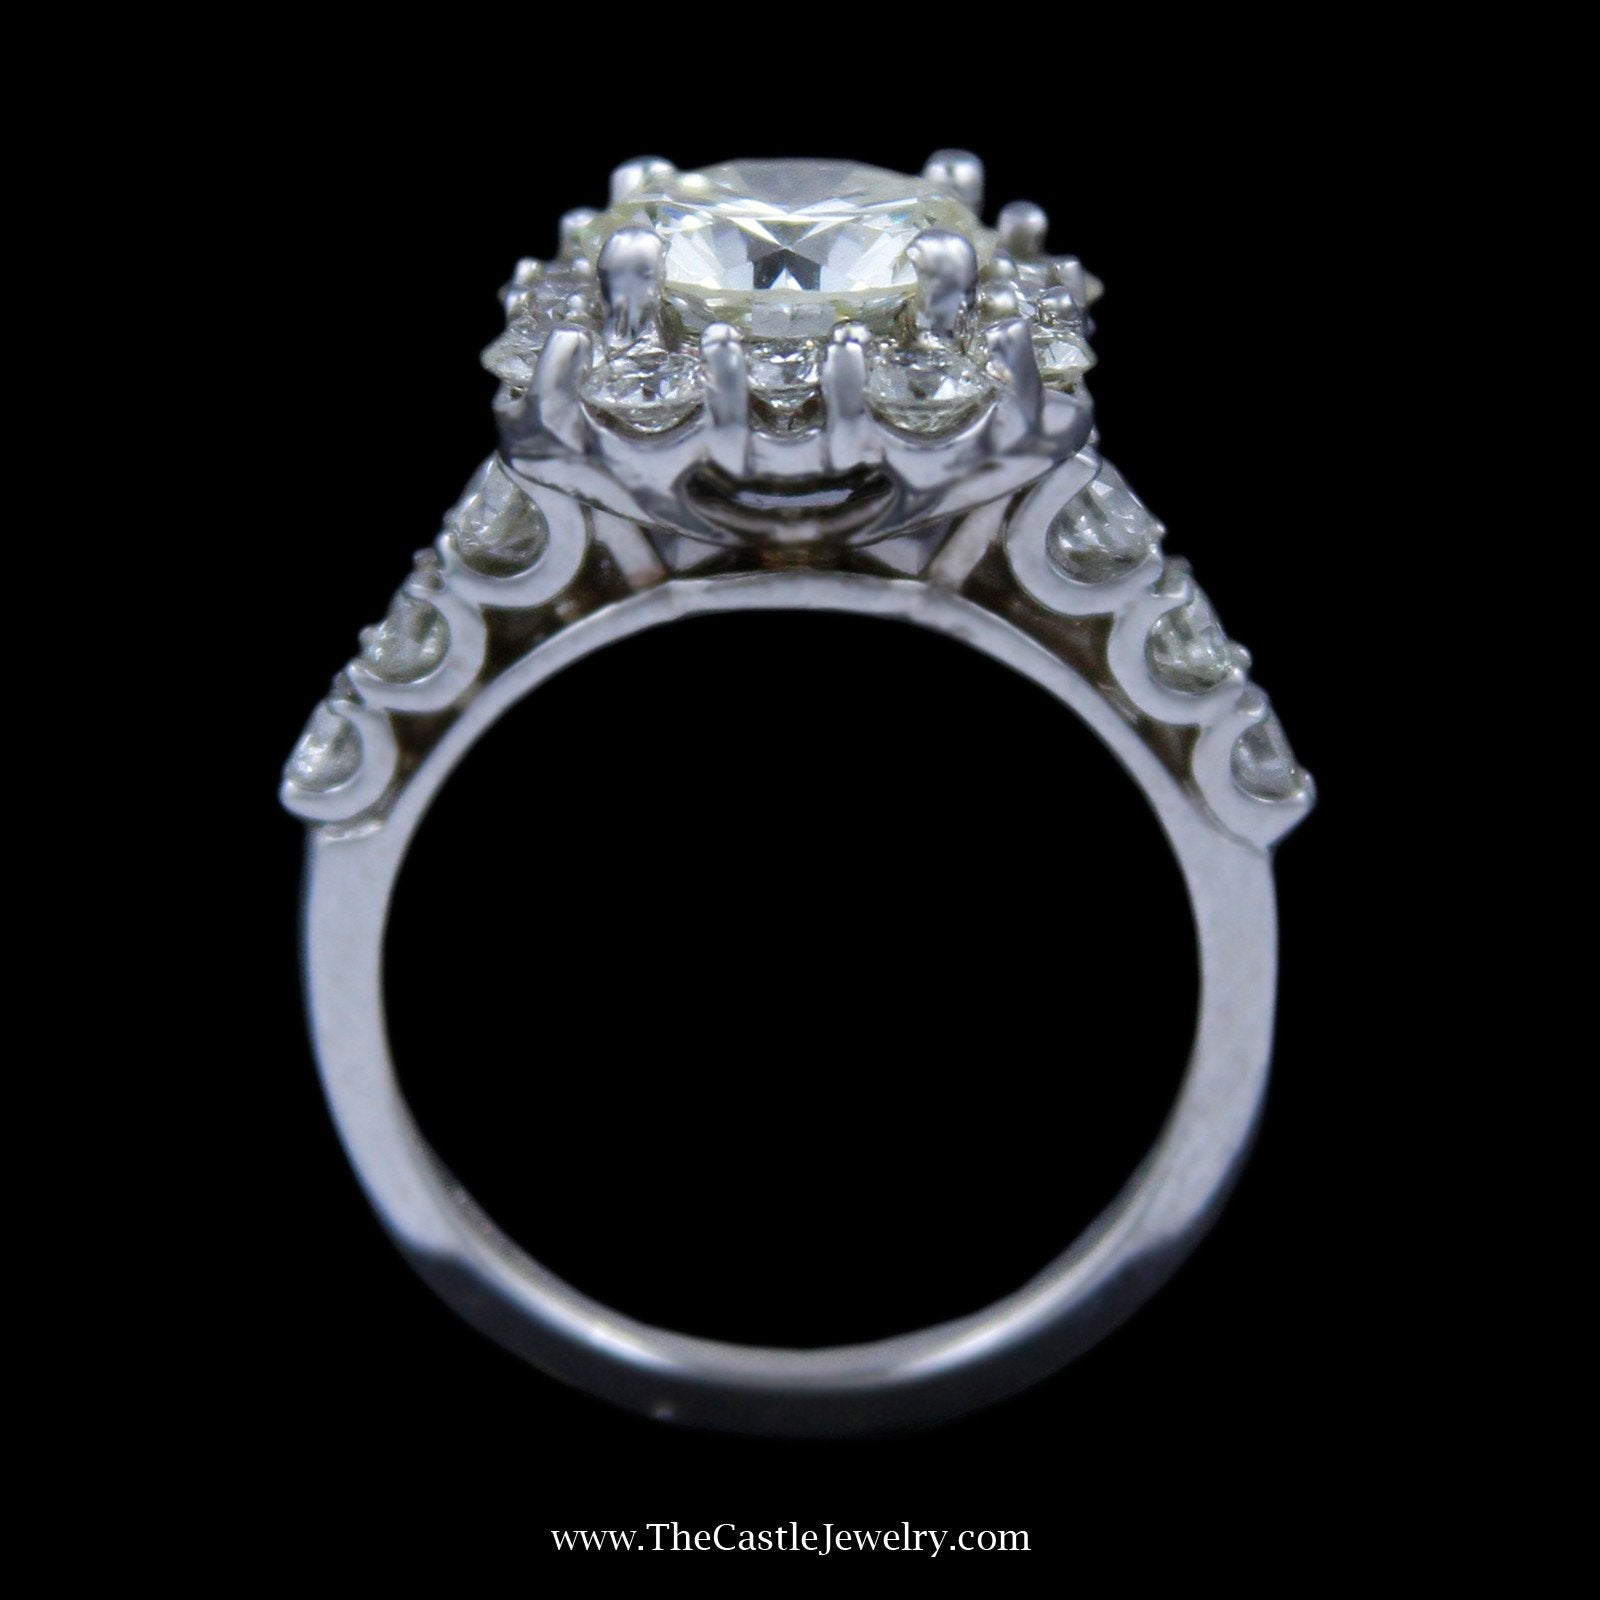 4cttw Round Brilliant Cut Diamond Engagement Ring w/ Unique Diamond Bezel & Sides-1